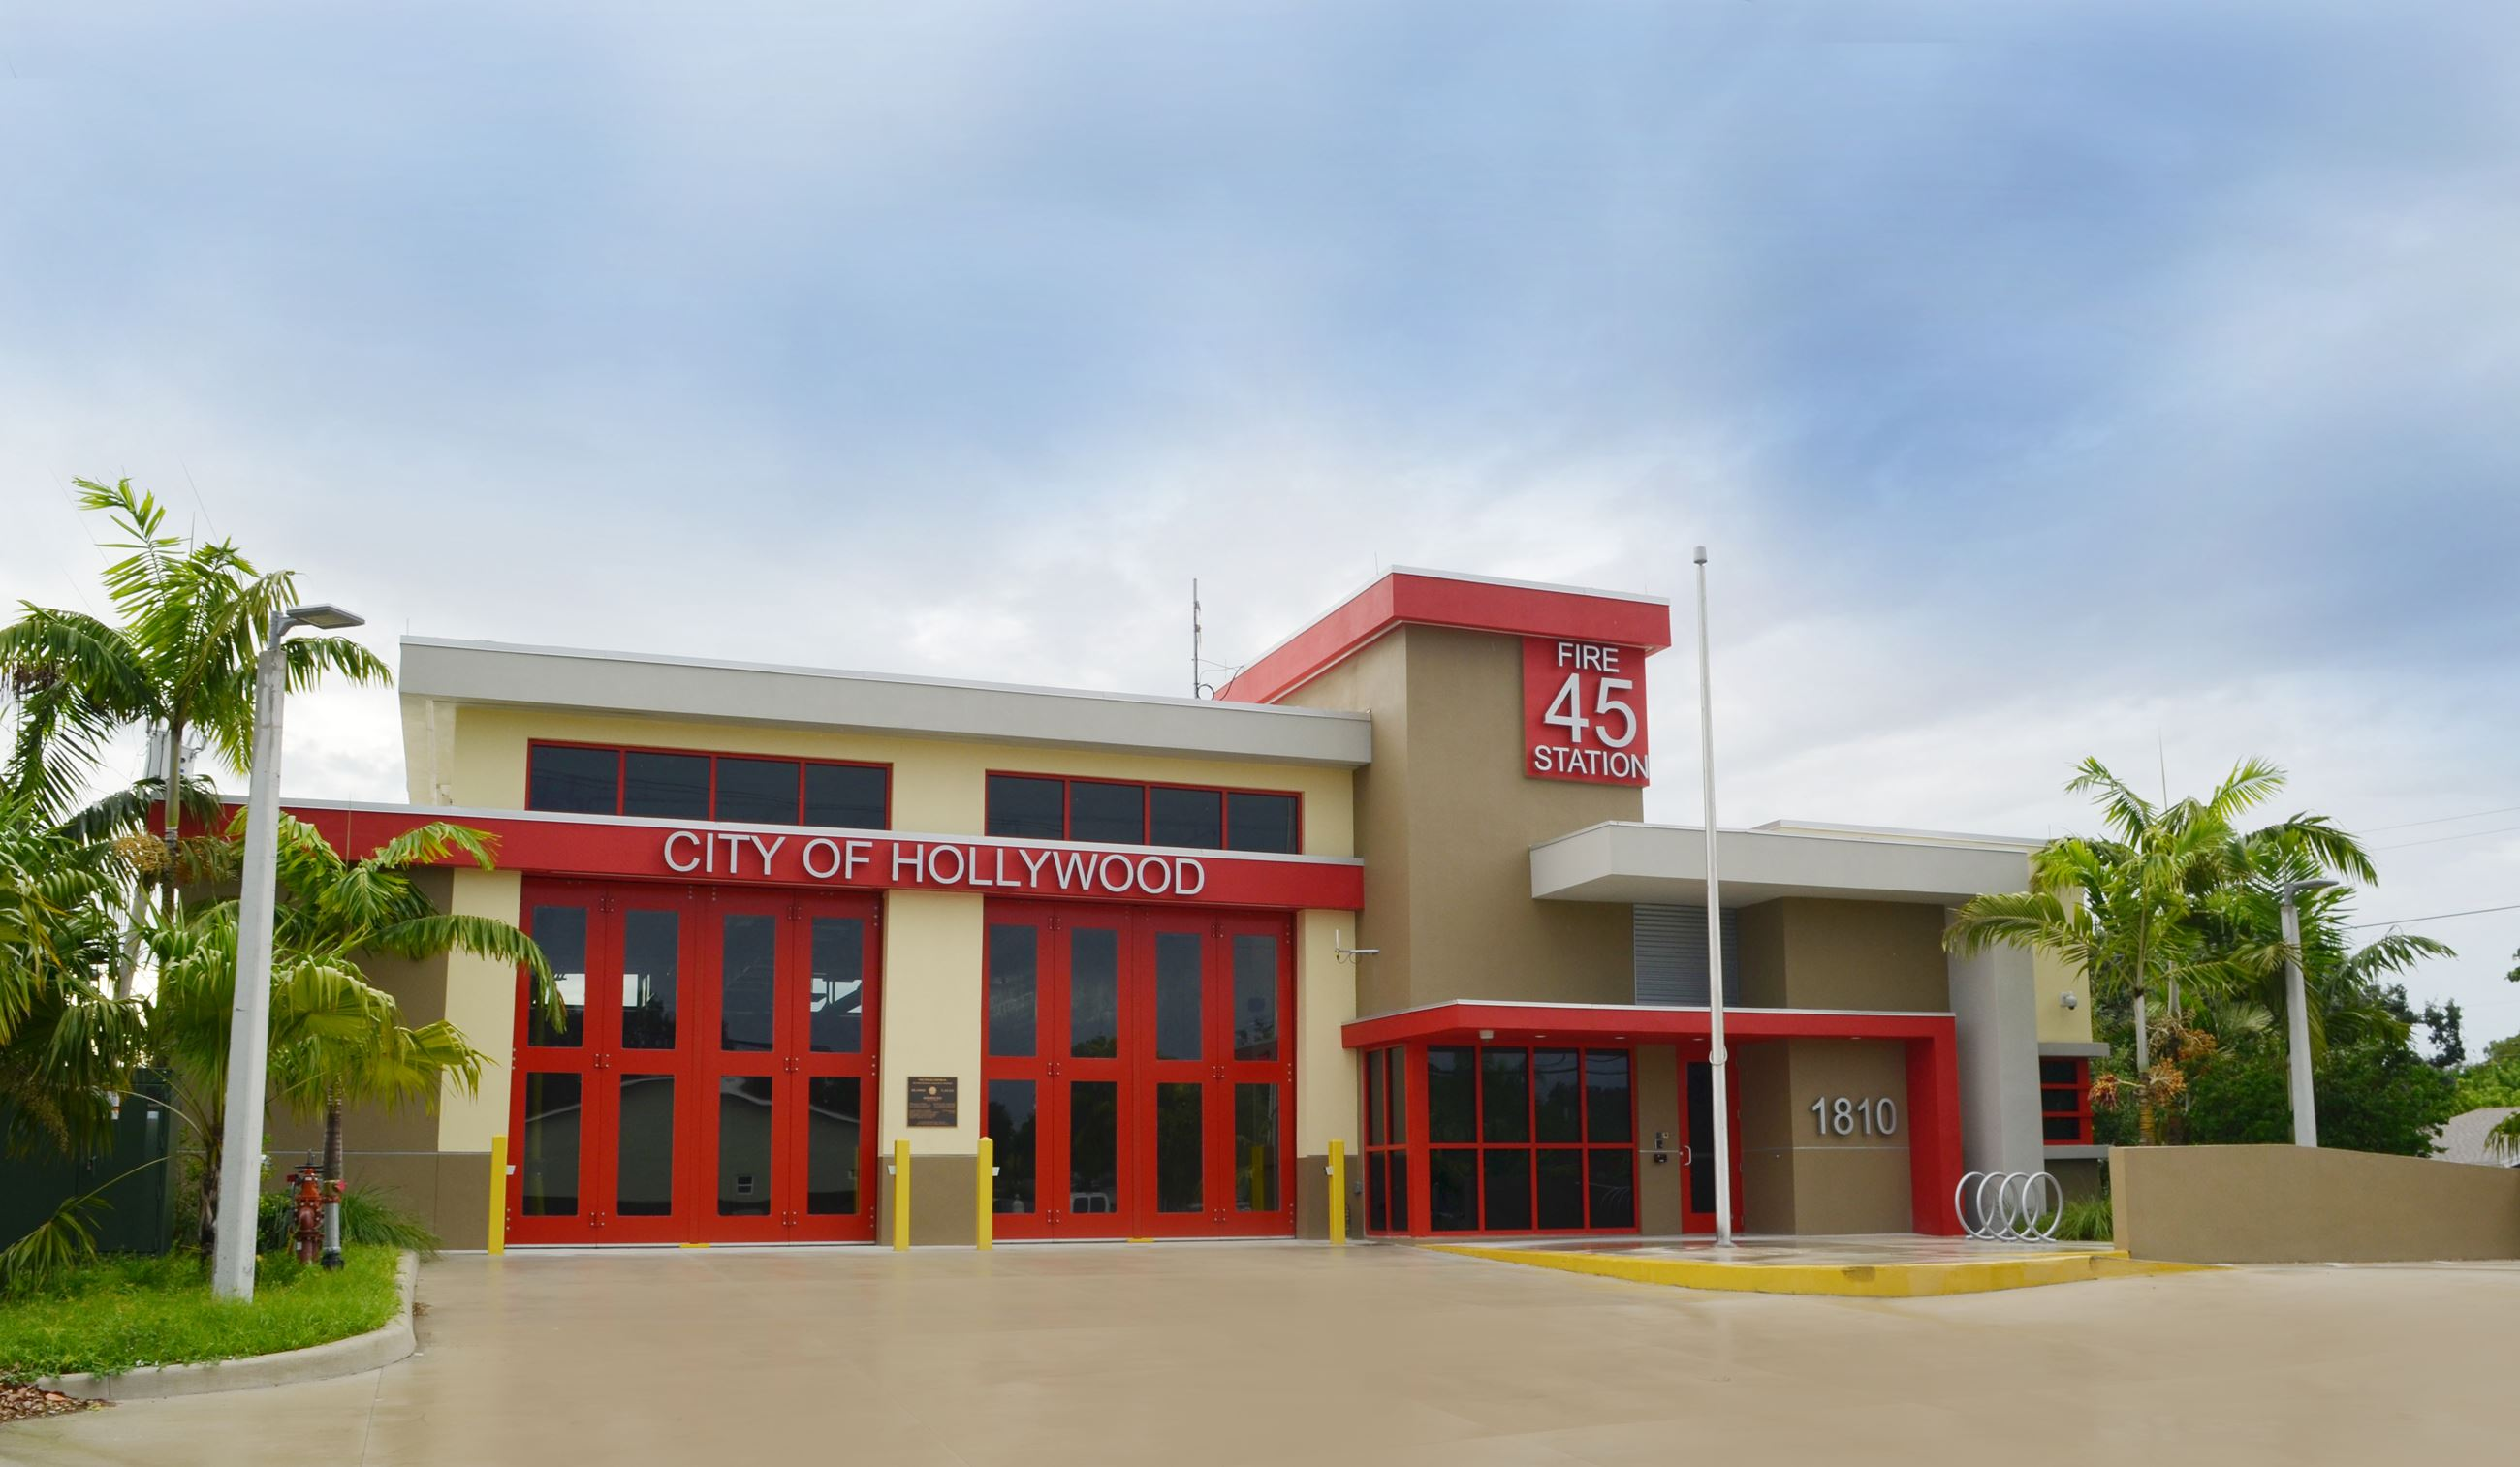 Fire Station 45